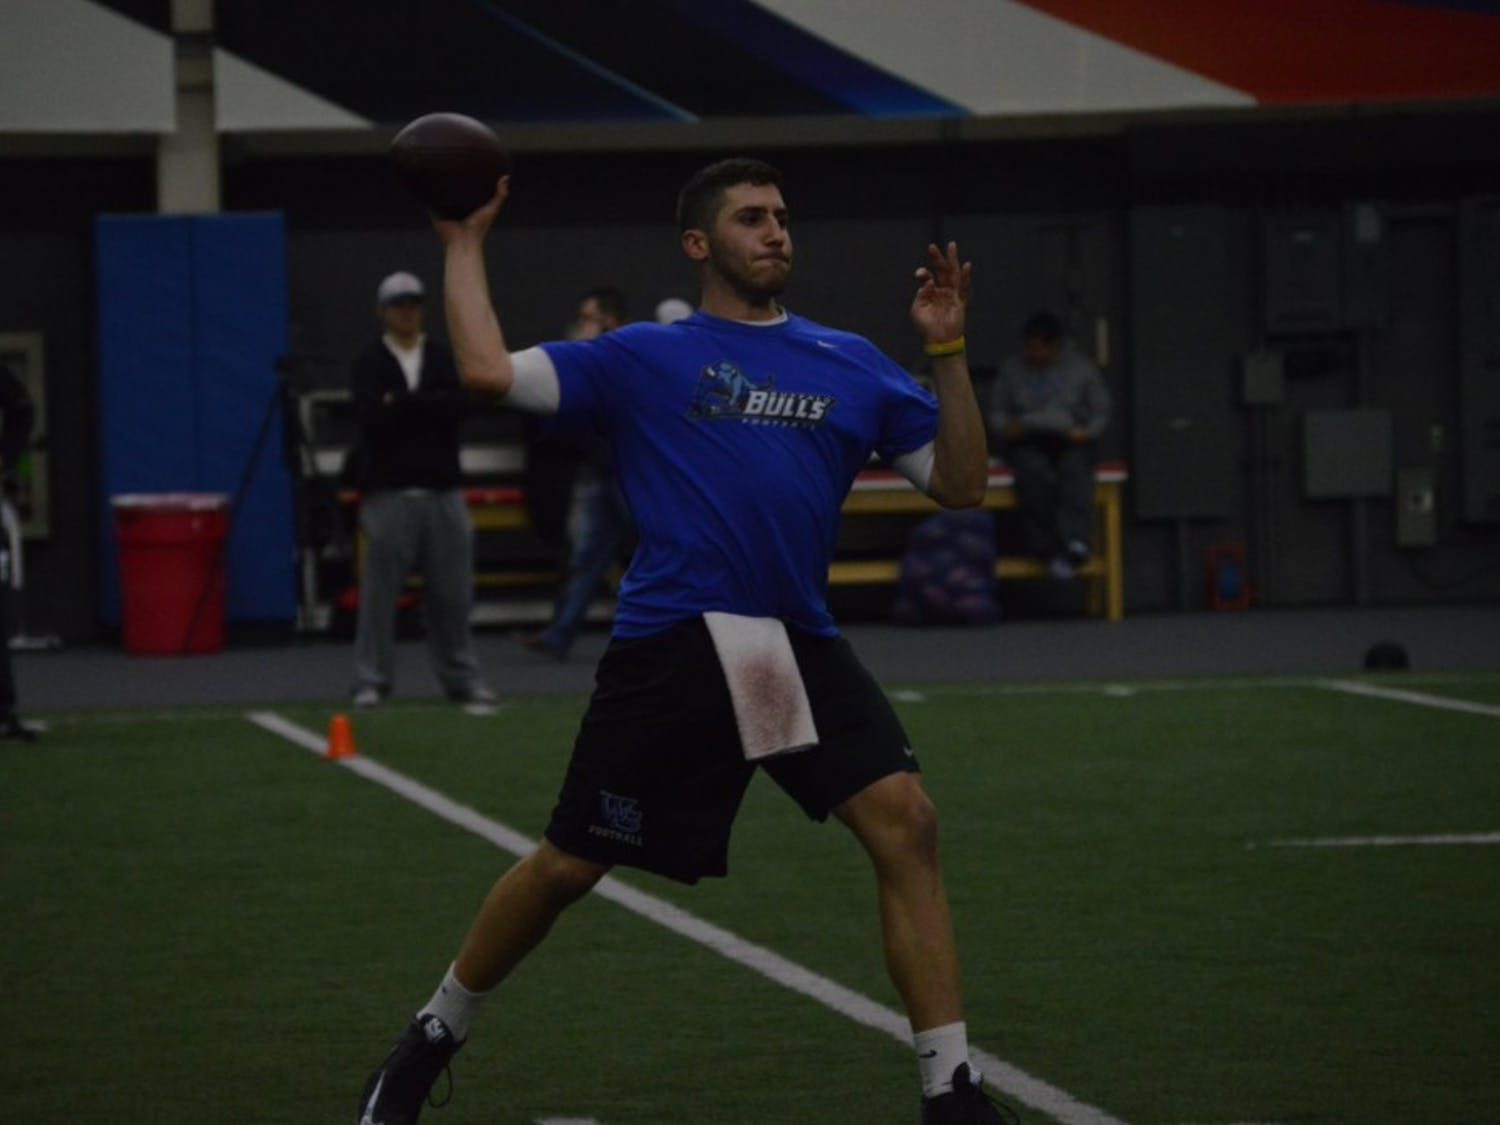 Twelve formermembers of the Buffalofootball team completed combine-style drills at the Buffalo Bills practice facility on Wednesday morning.